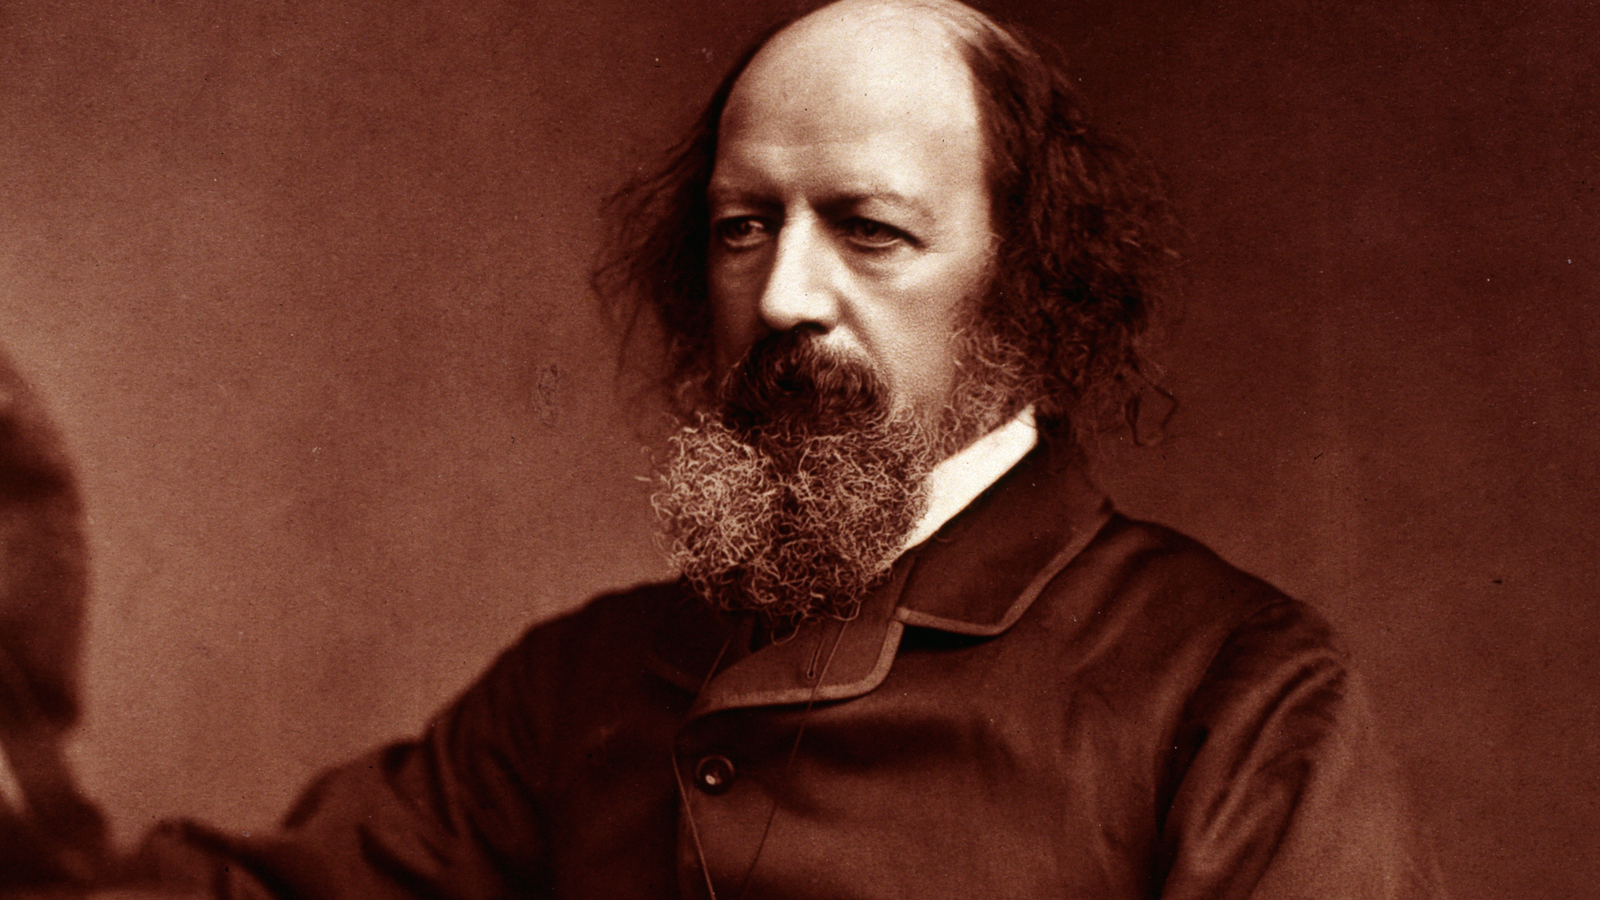 Tennyson's rise and fall